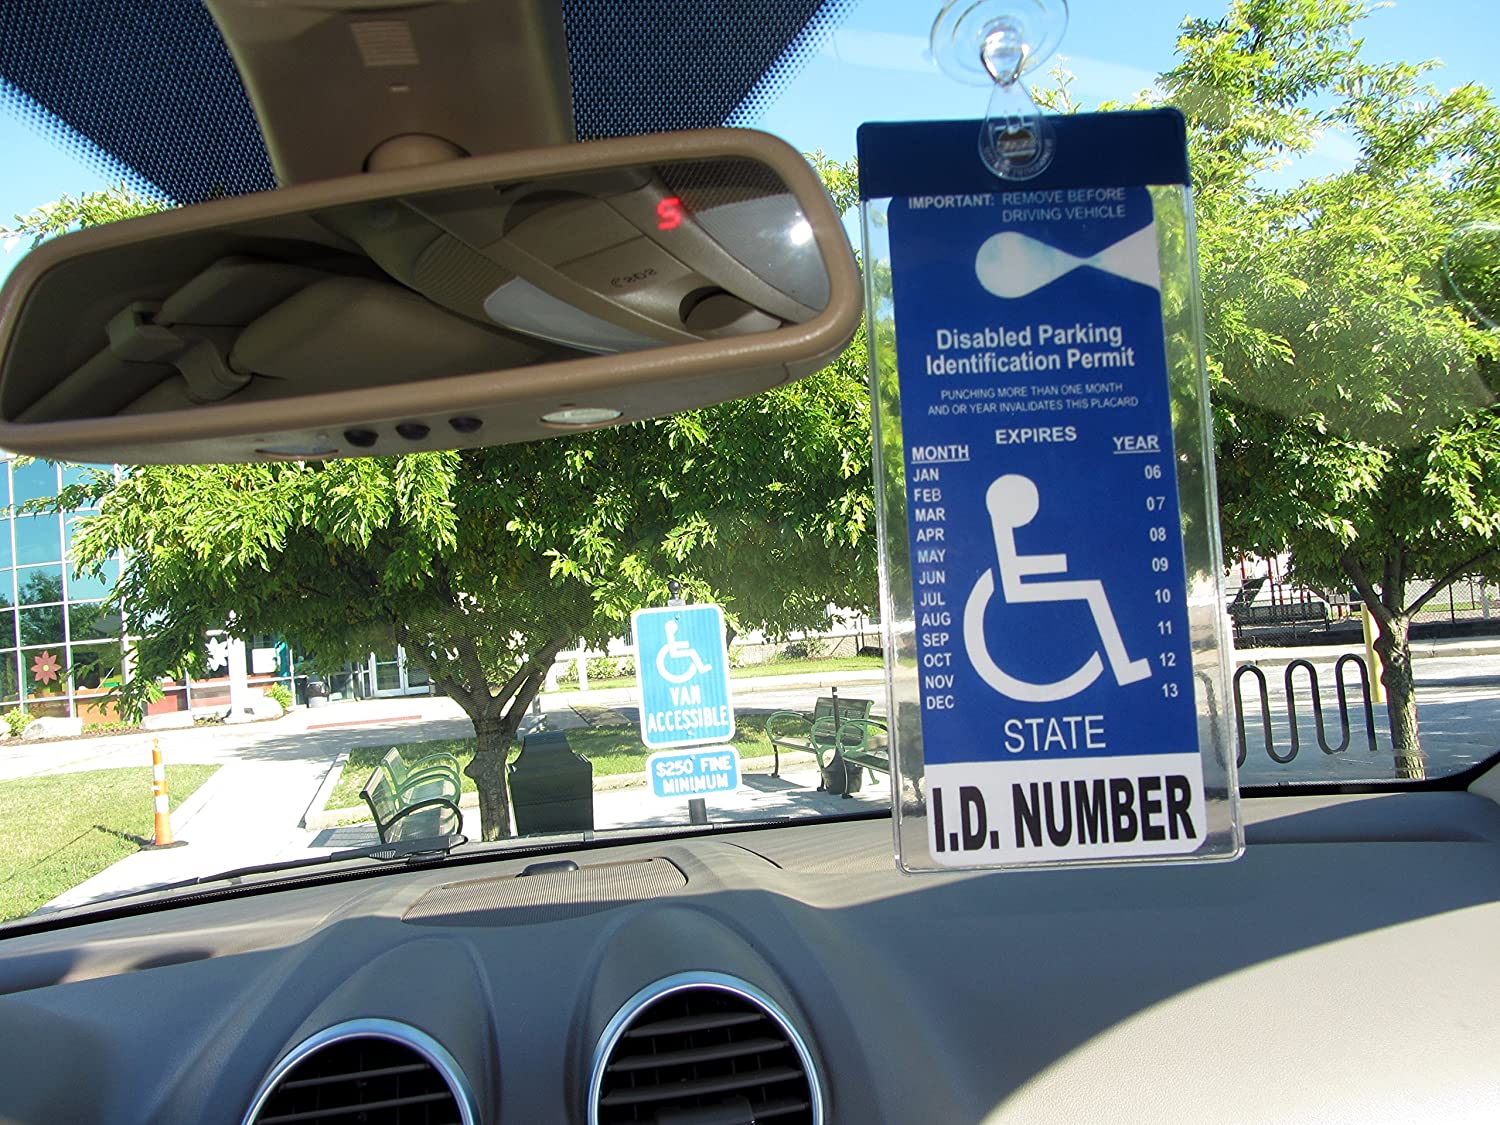 Amazon.com Windshield Tag by JL Safety. Handicap Placard Protective Holder with Suction Cup. Magnetically Display u0026 Remove Tag Automotive & Amazon.com: Windshield Tag by JL Safety. Handicap Placard Protective ...